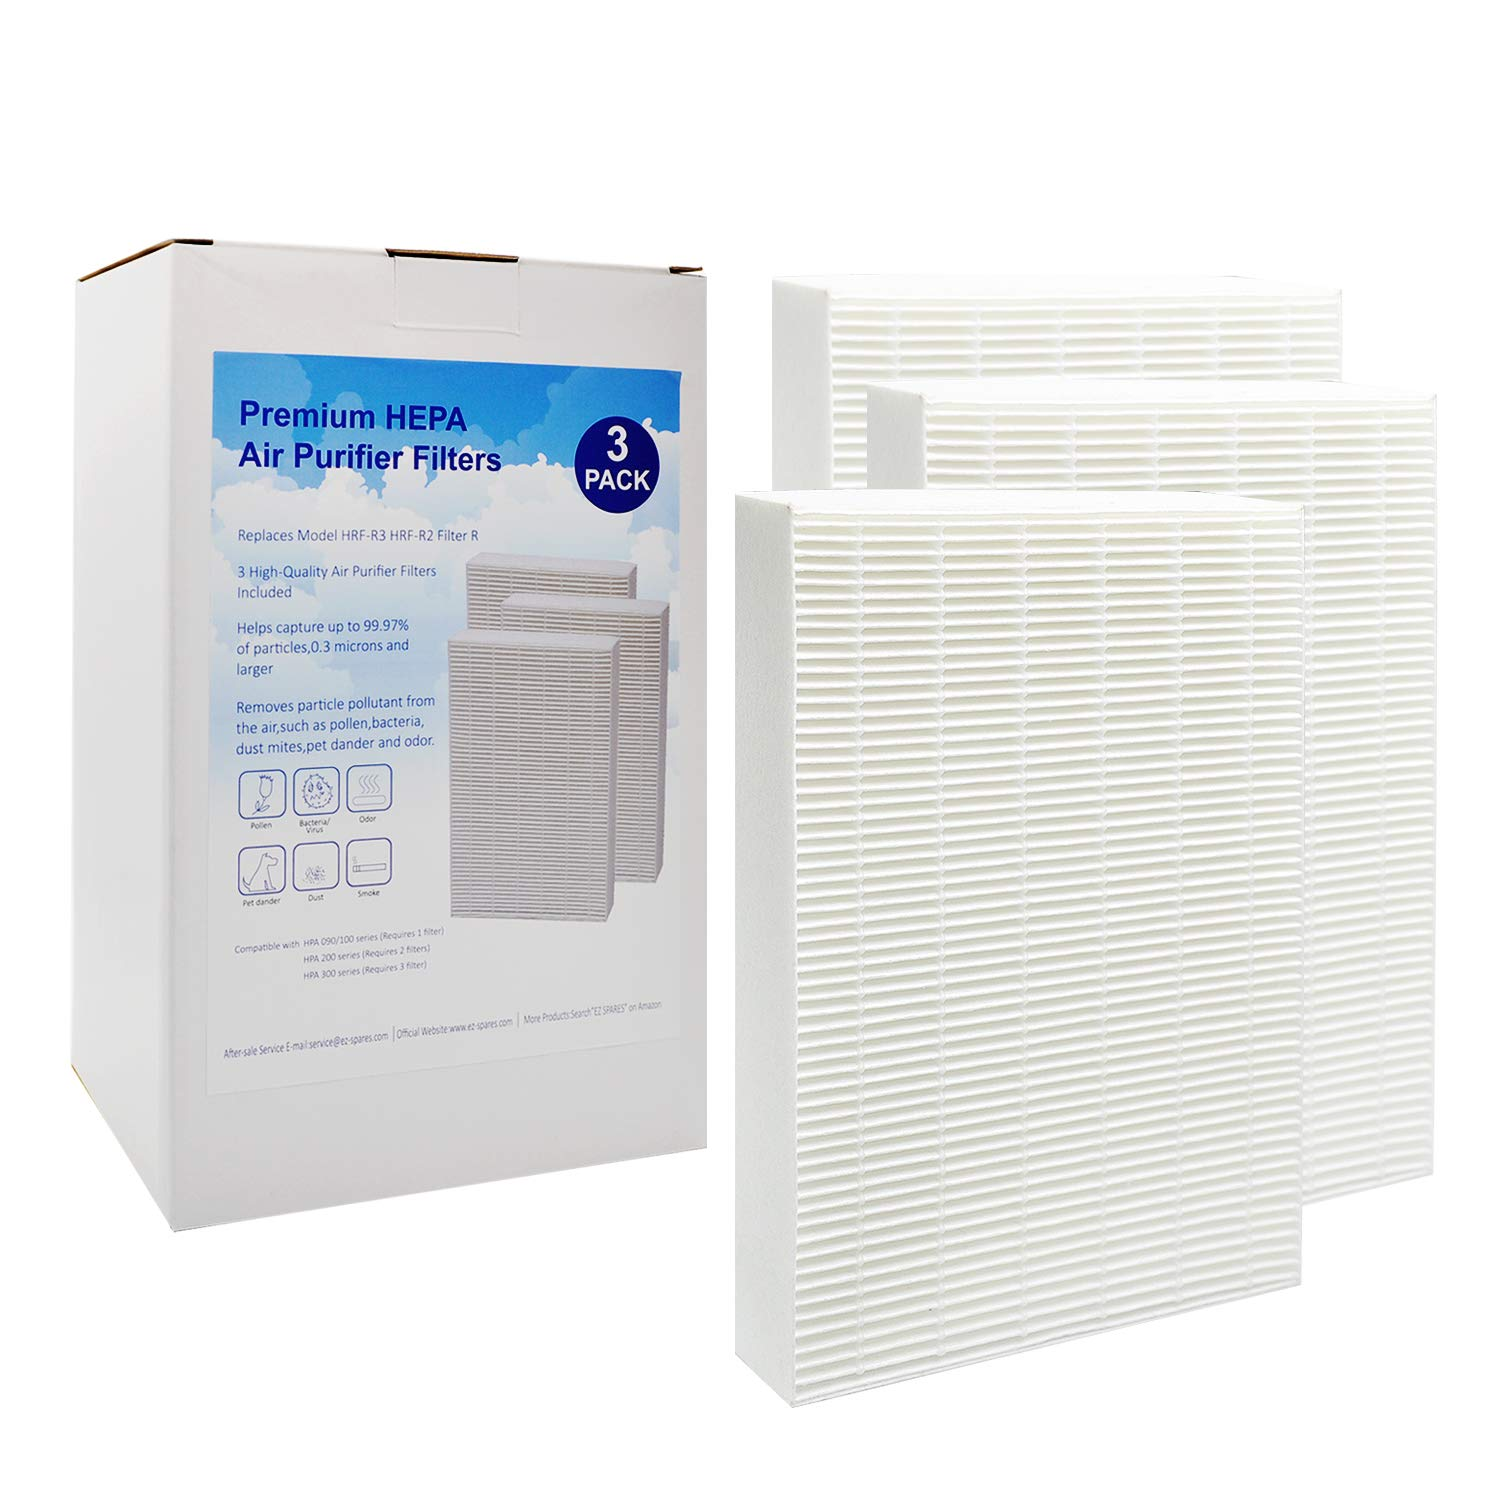 EZ SPARES 3Pcs True Hepa Filter Replacement for Honeywell Air Purifier Models HPA300, HPA100 and HPA200,Compared with HRF-R2, HRF-R3, Filter R